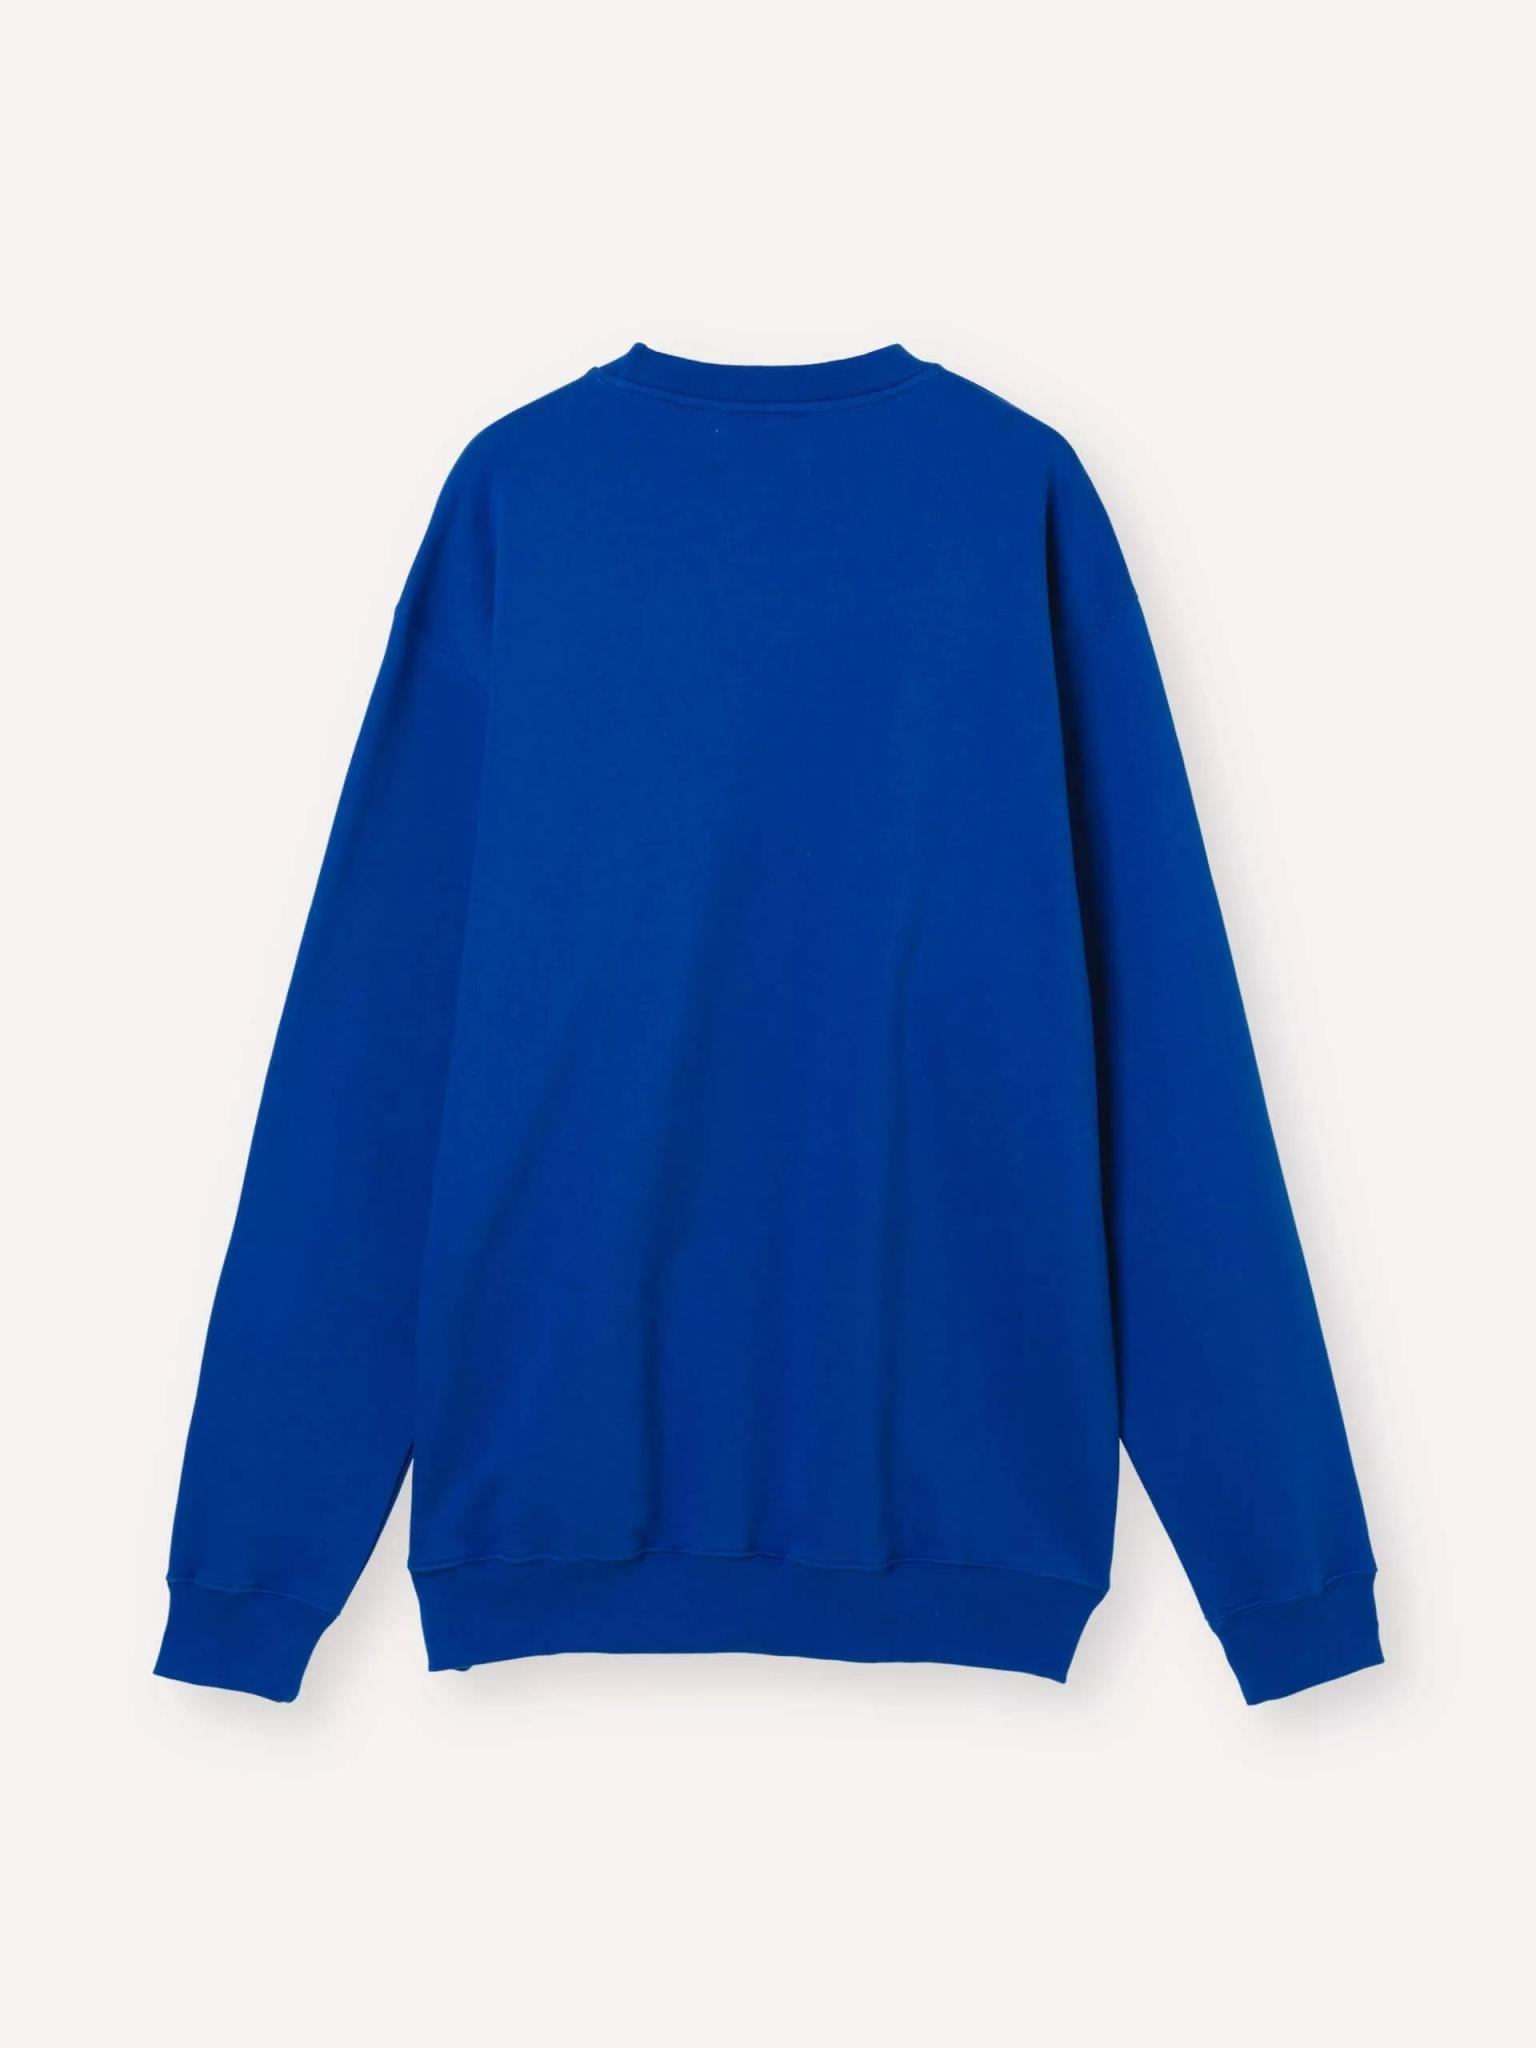 Society Logo Sweatshirt HQ Blue-3